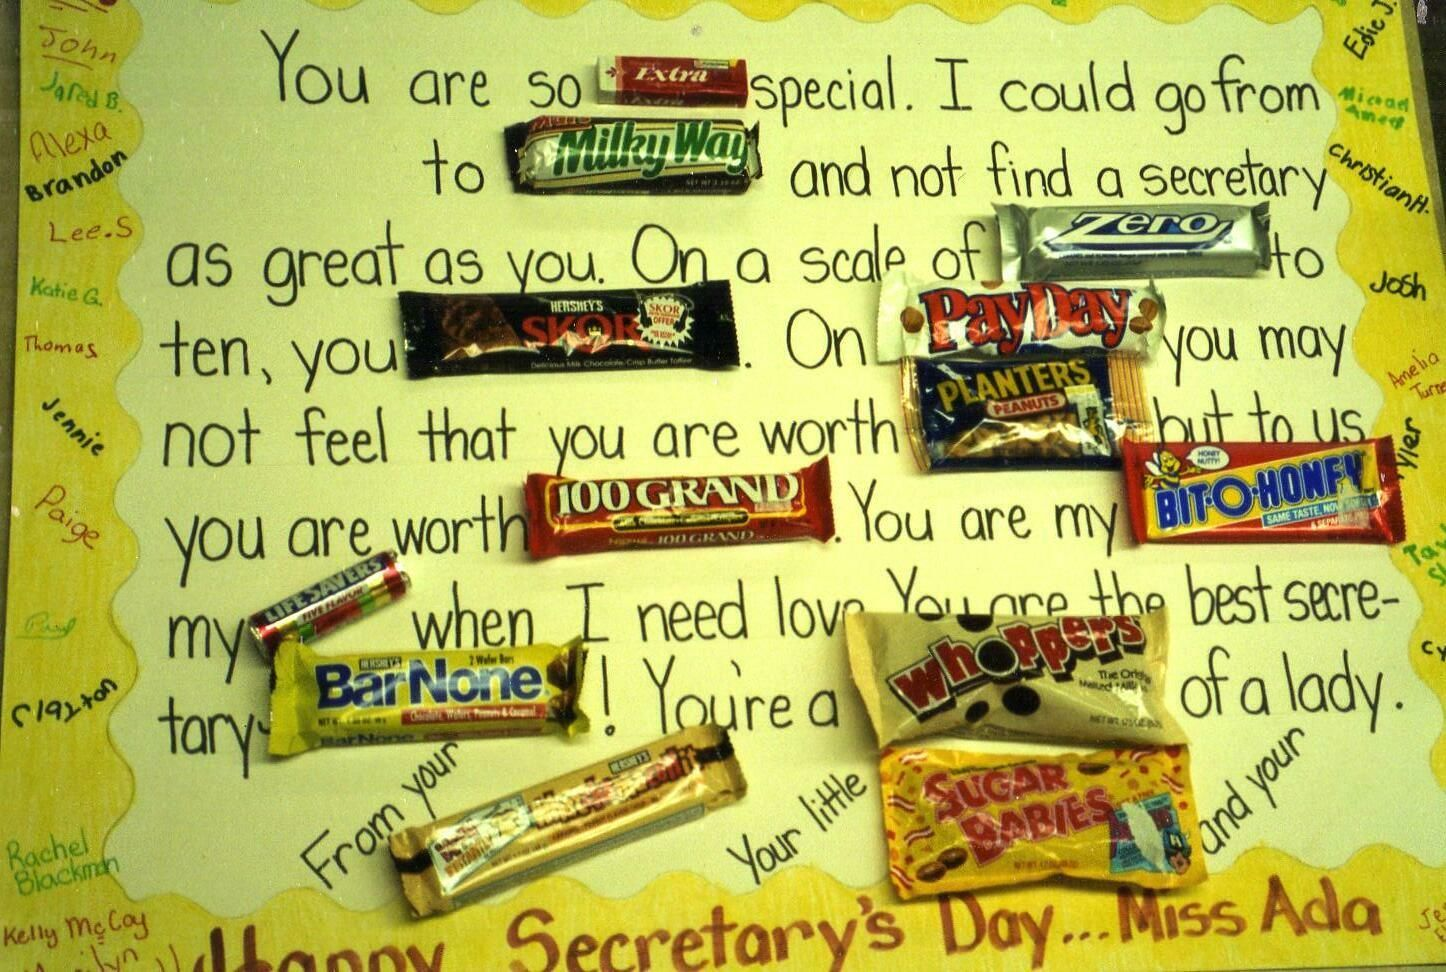 valentines day quotes presents for daddy uk elementary school enrichment activities secretary day candy gram